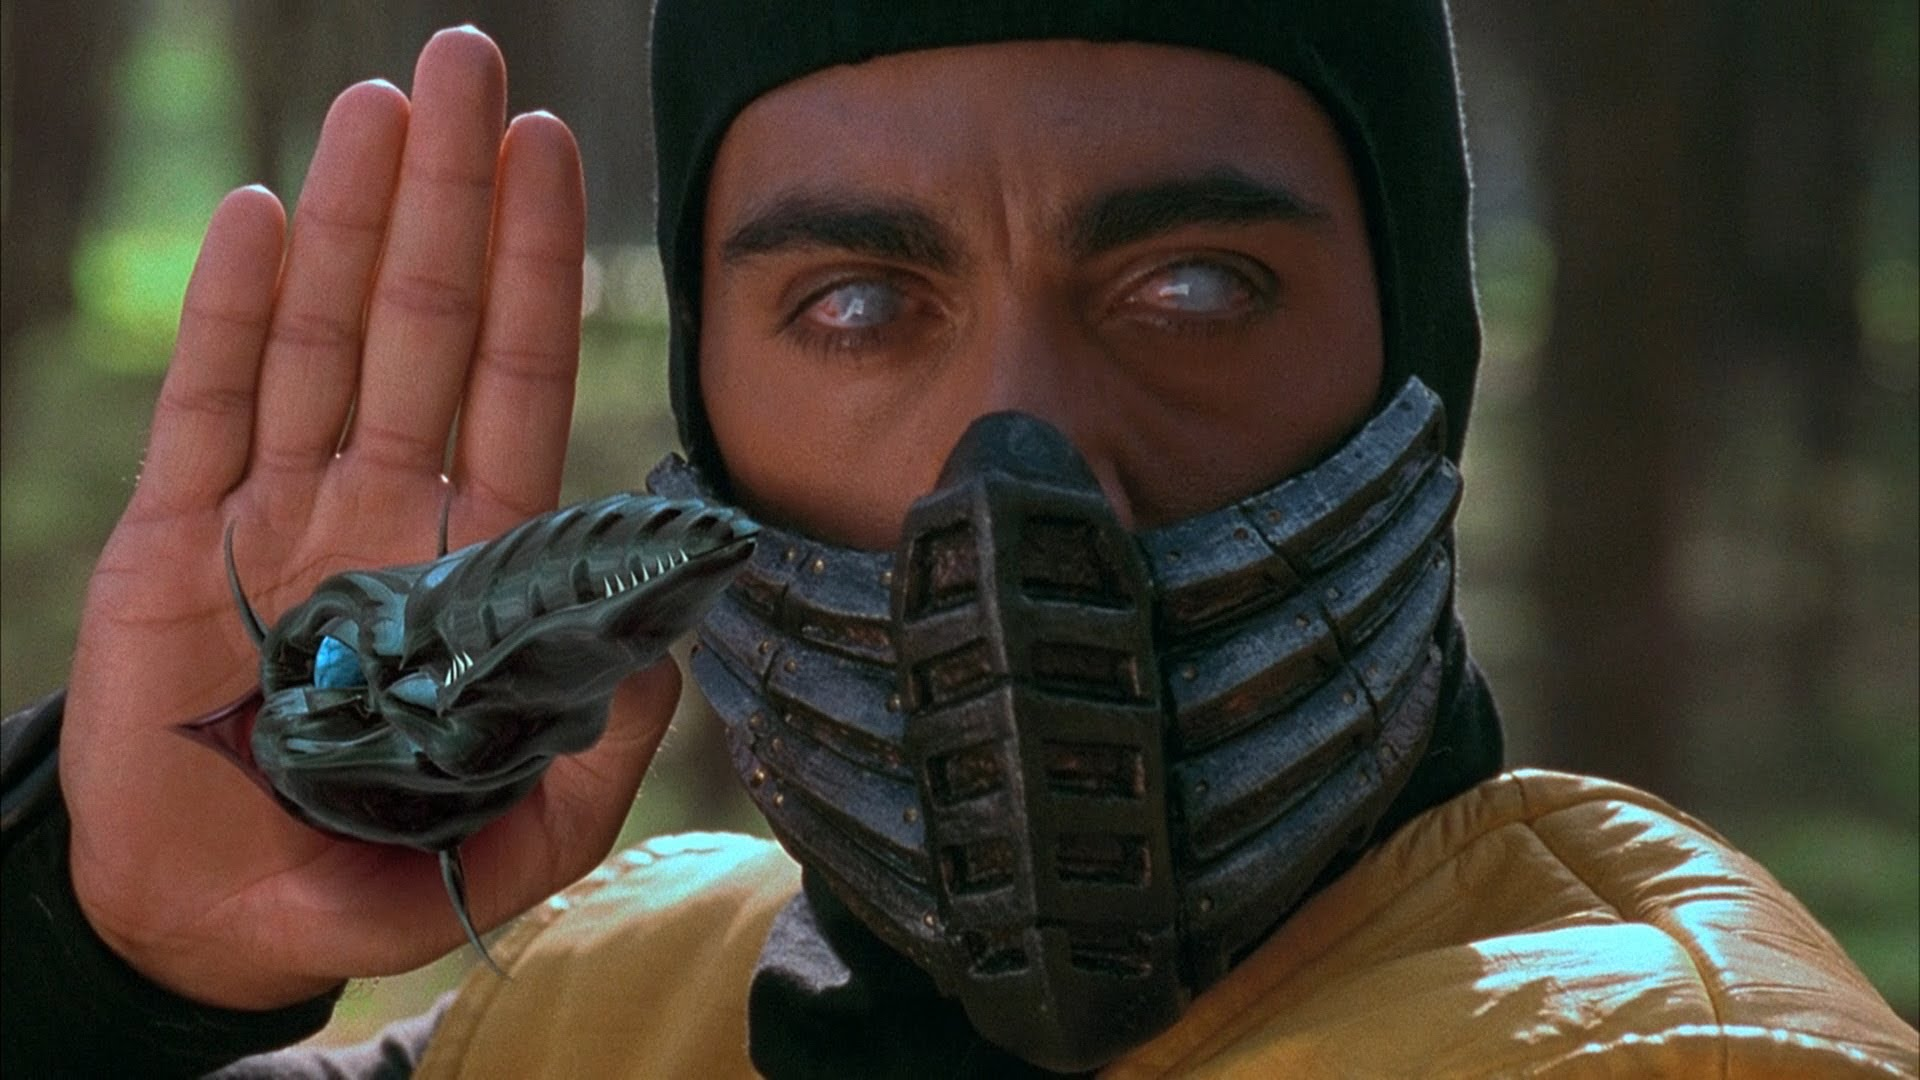 GET OVER HERE!! The #MortalKombat movie is coming to #Netflix next month!  https://t.co/uI2o9ev0m8 https://t.co/HqXaJNddTZ